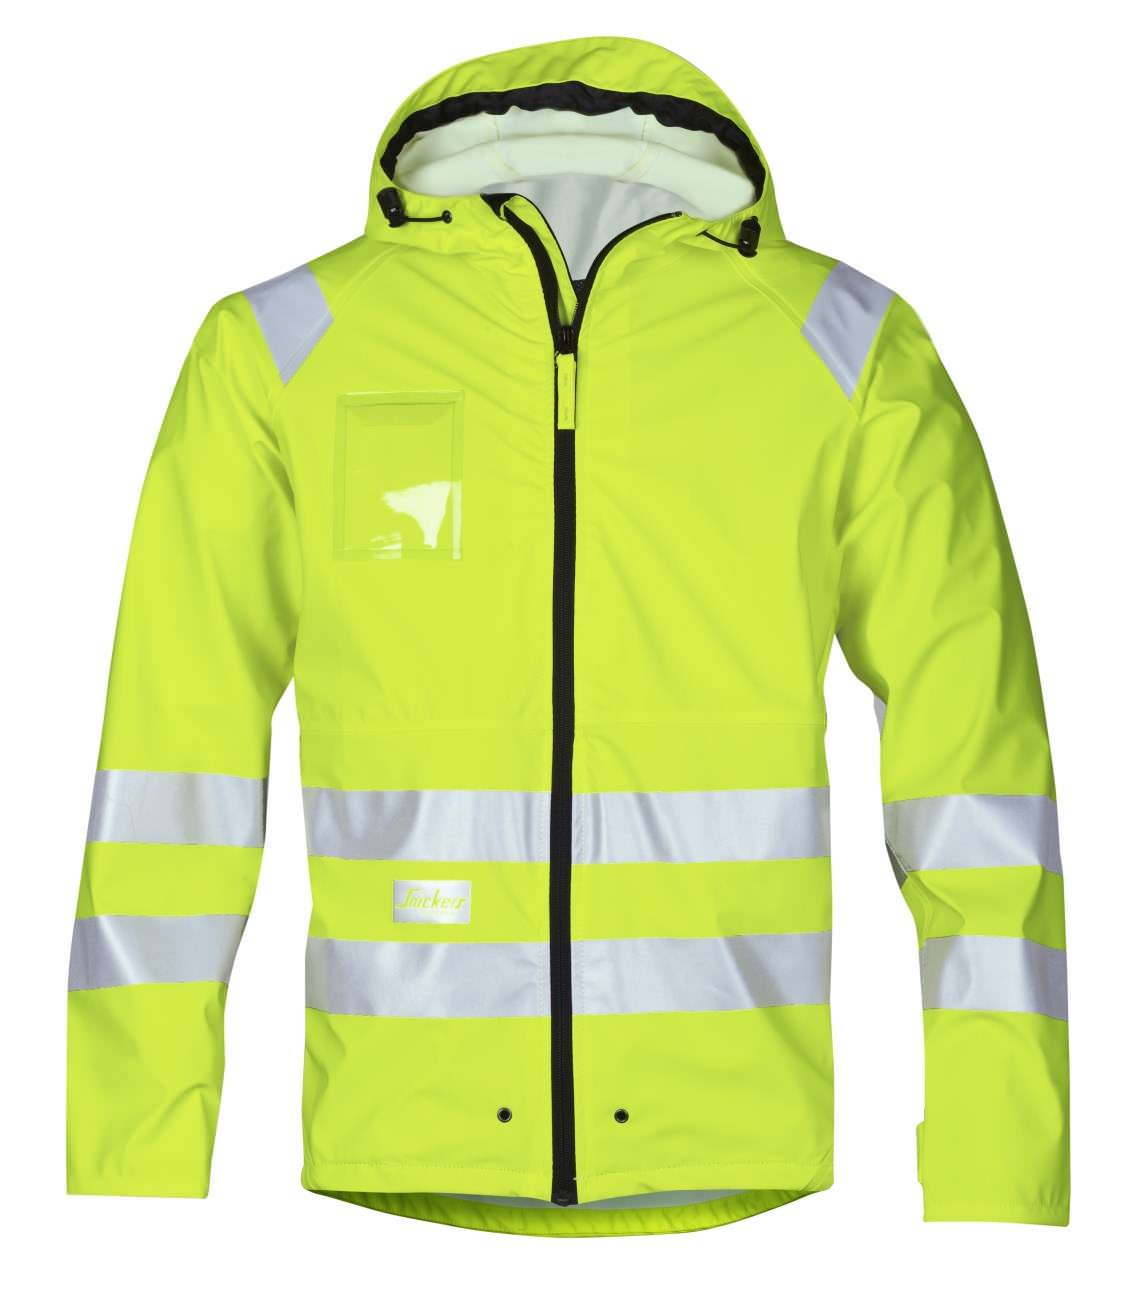 Snickers 8233 High-Vis PU Rain Jacket, Class 3